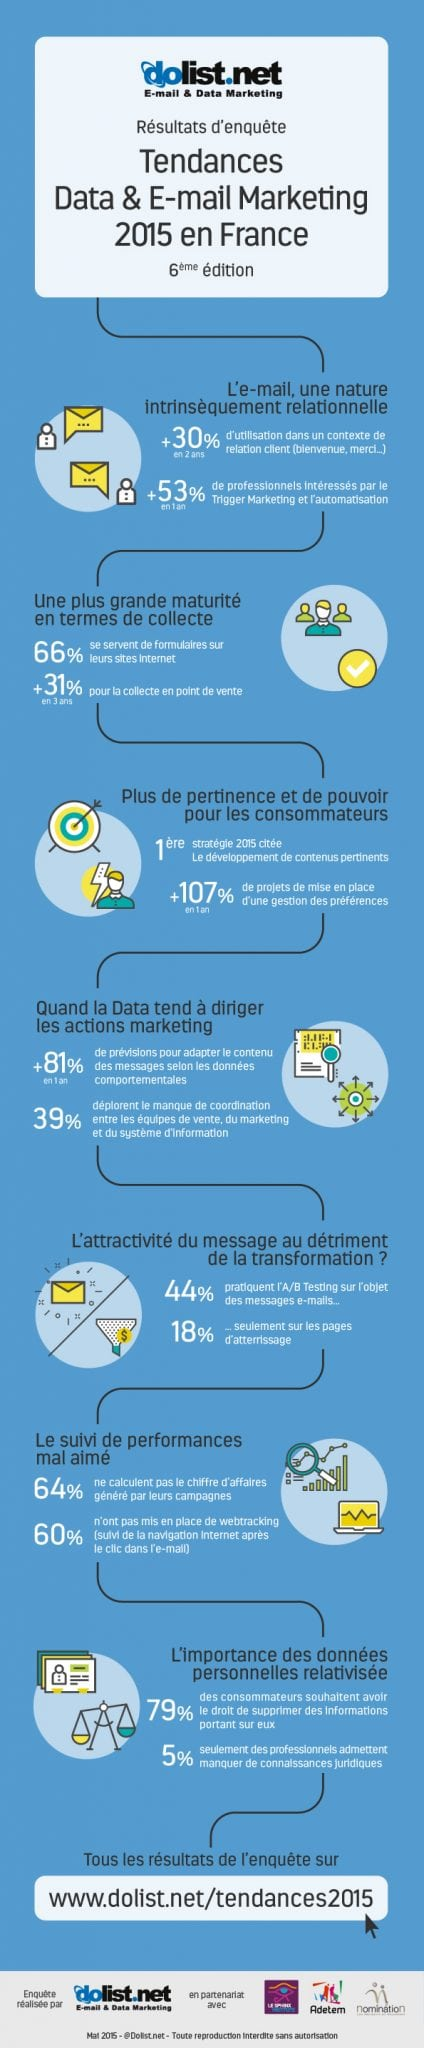 infographie-dolist-resultat-enquete-tendances-data-email-marketing